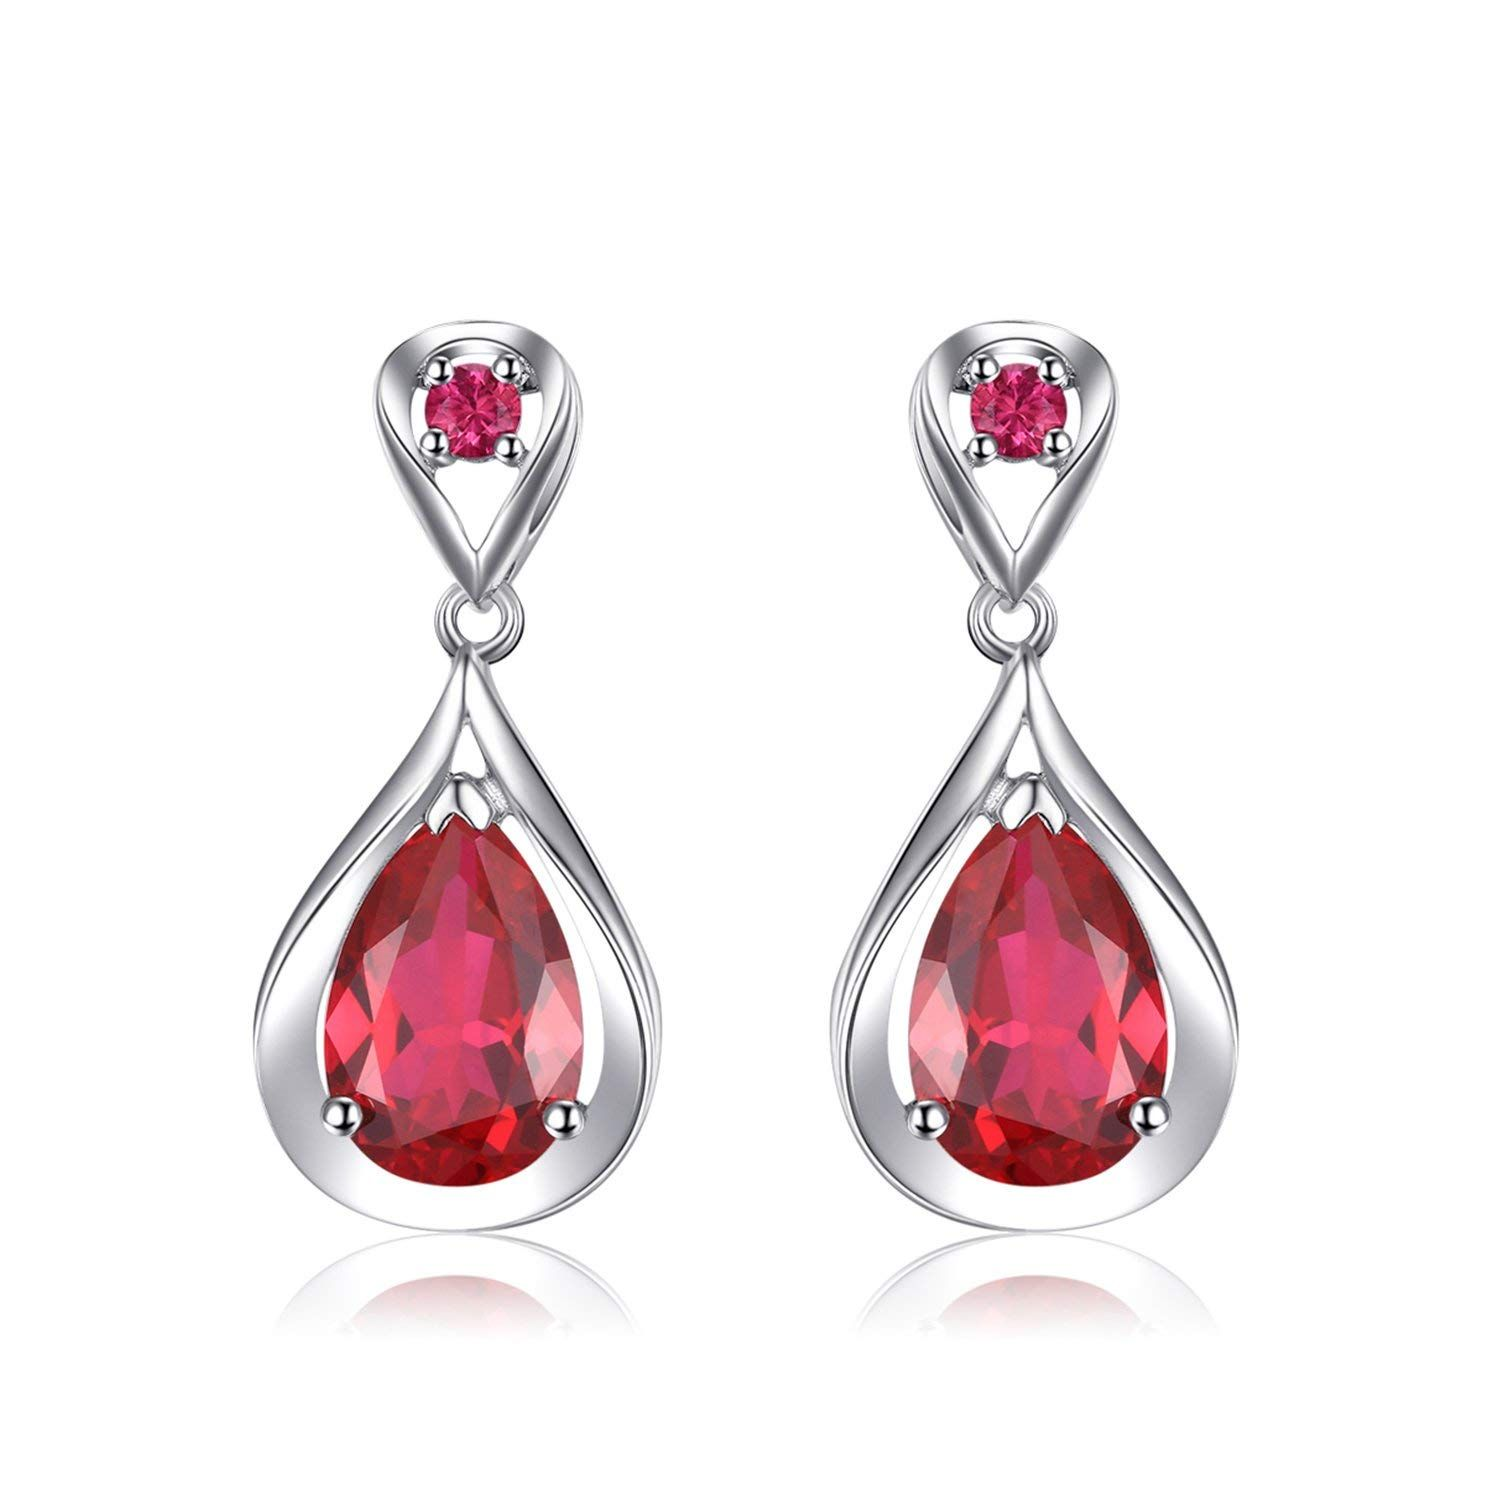 462b436120ef6 JewelryPalace Water Drop 8.8ct Created Red Ruby Dangle Earrings ...